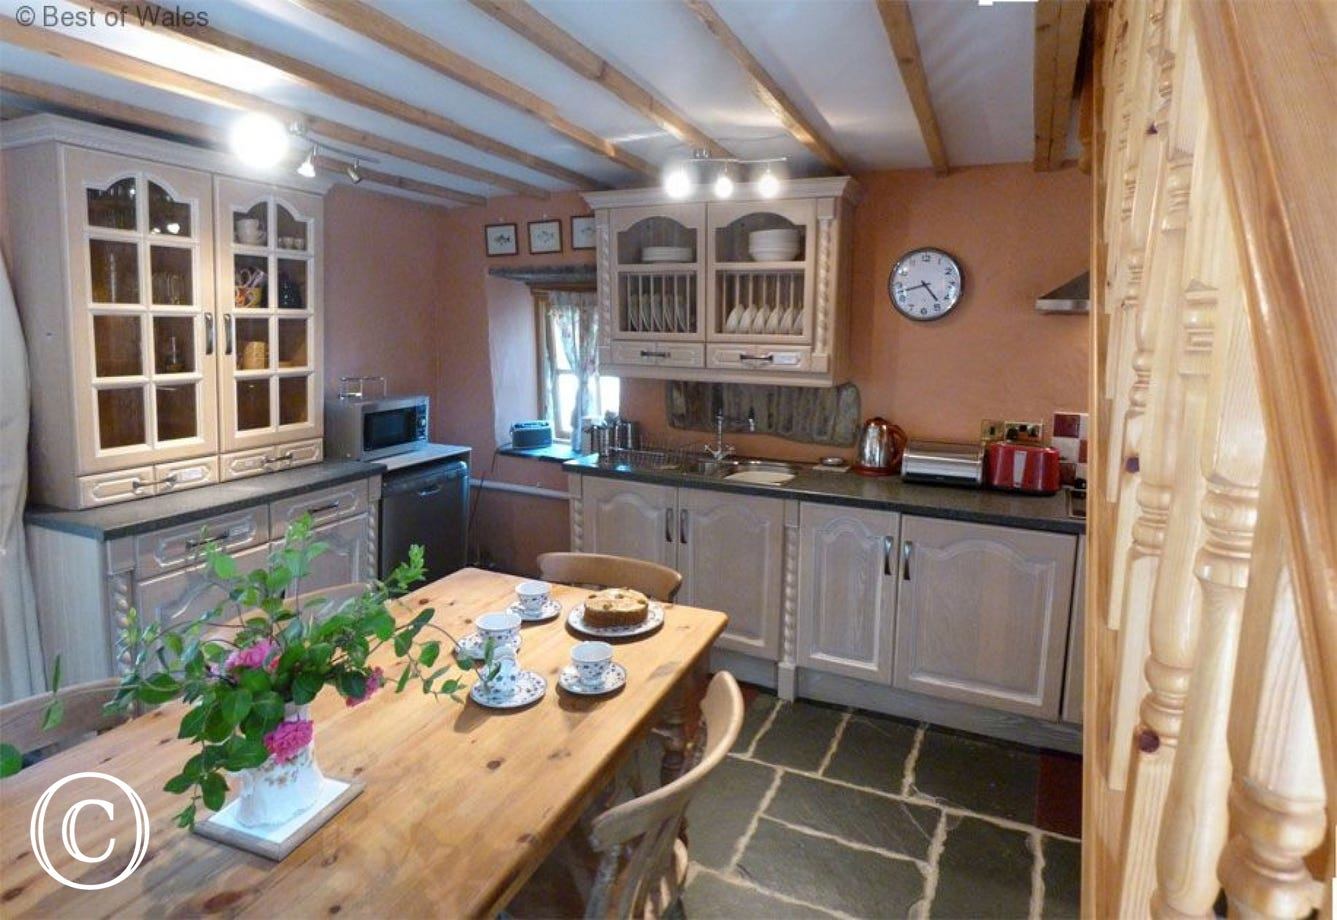 Stabal yr Eglwys Luxury holiday cottage - kicthen area